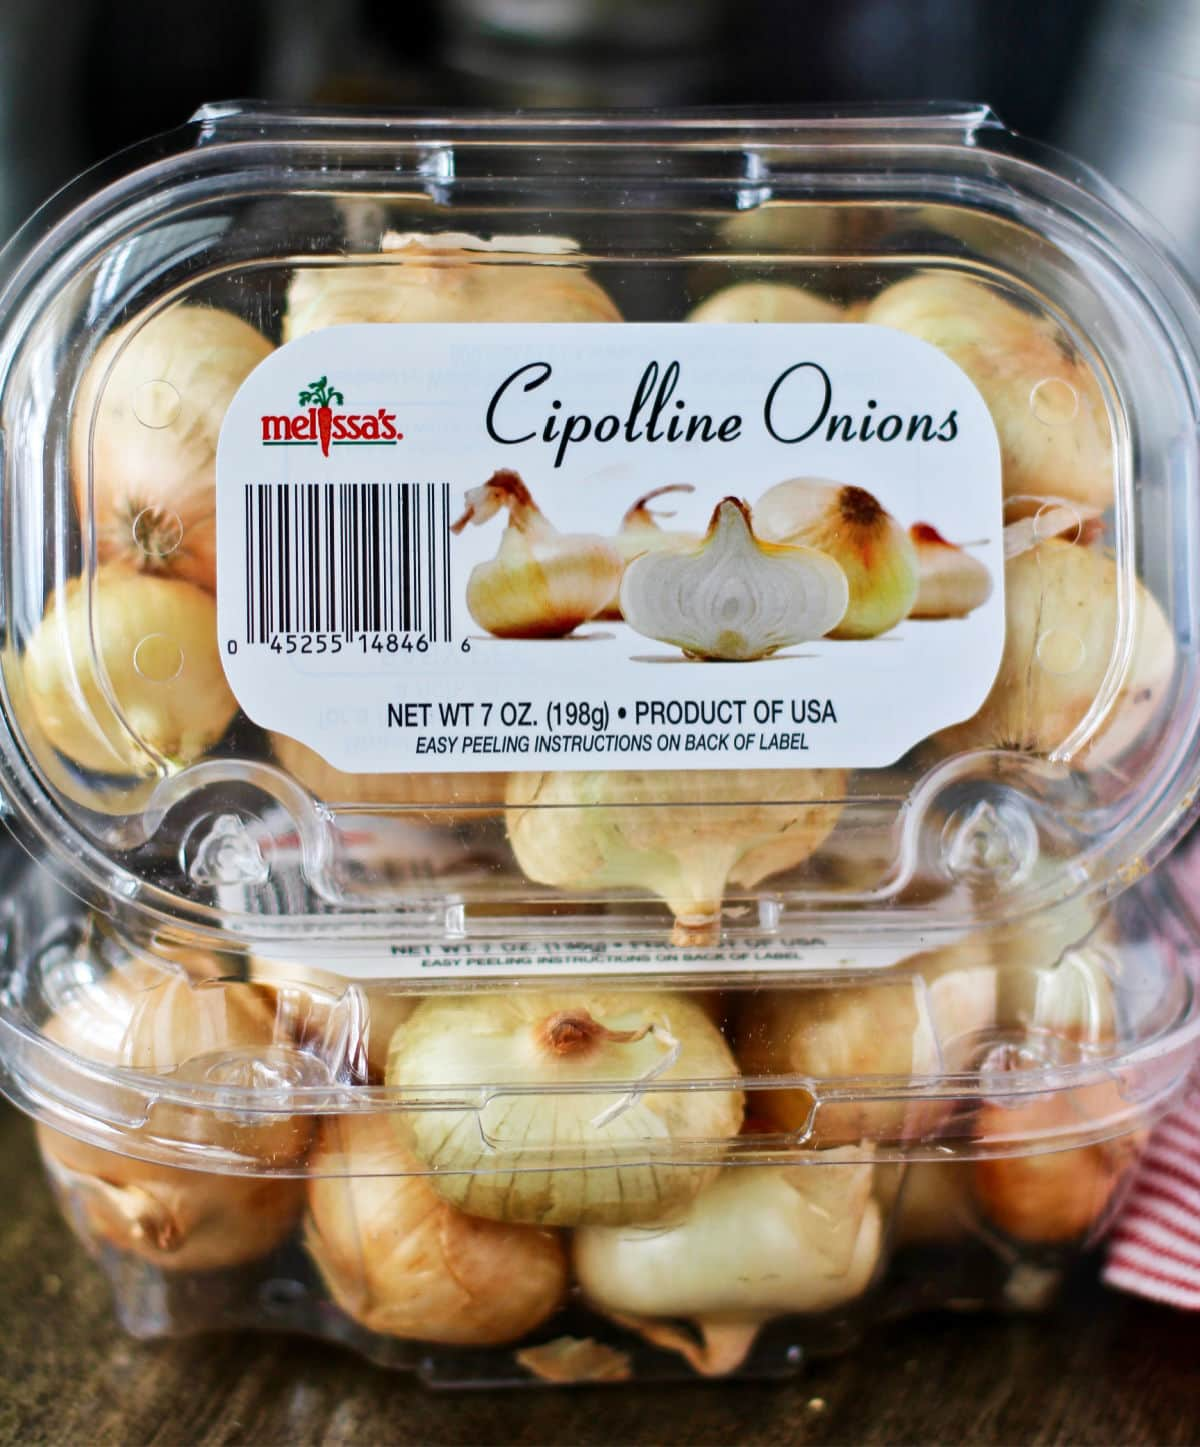 Cipollini onions in package.